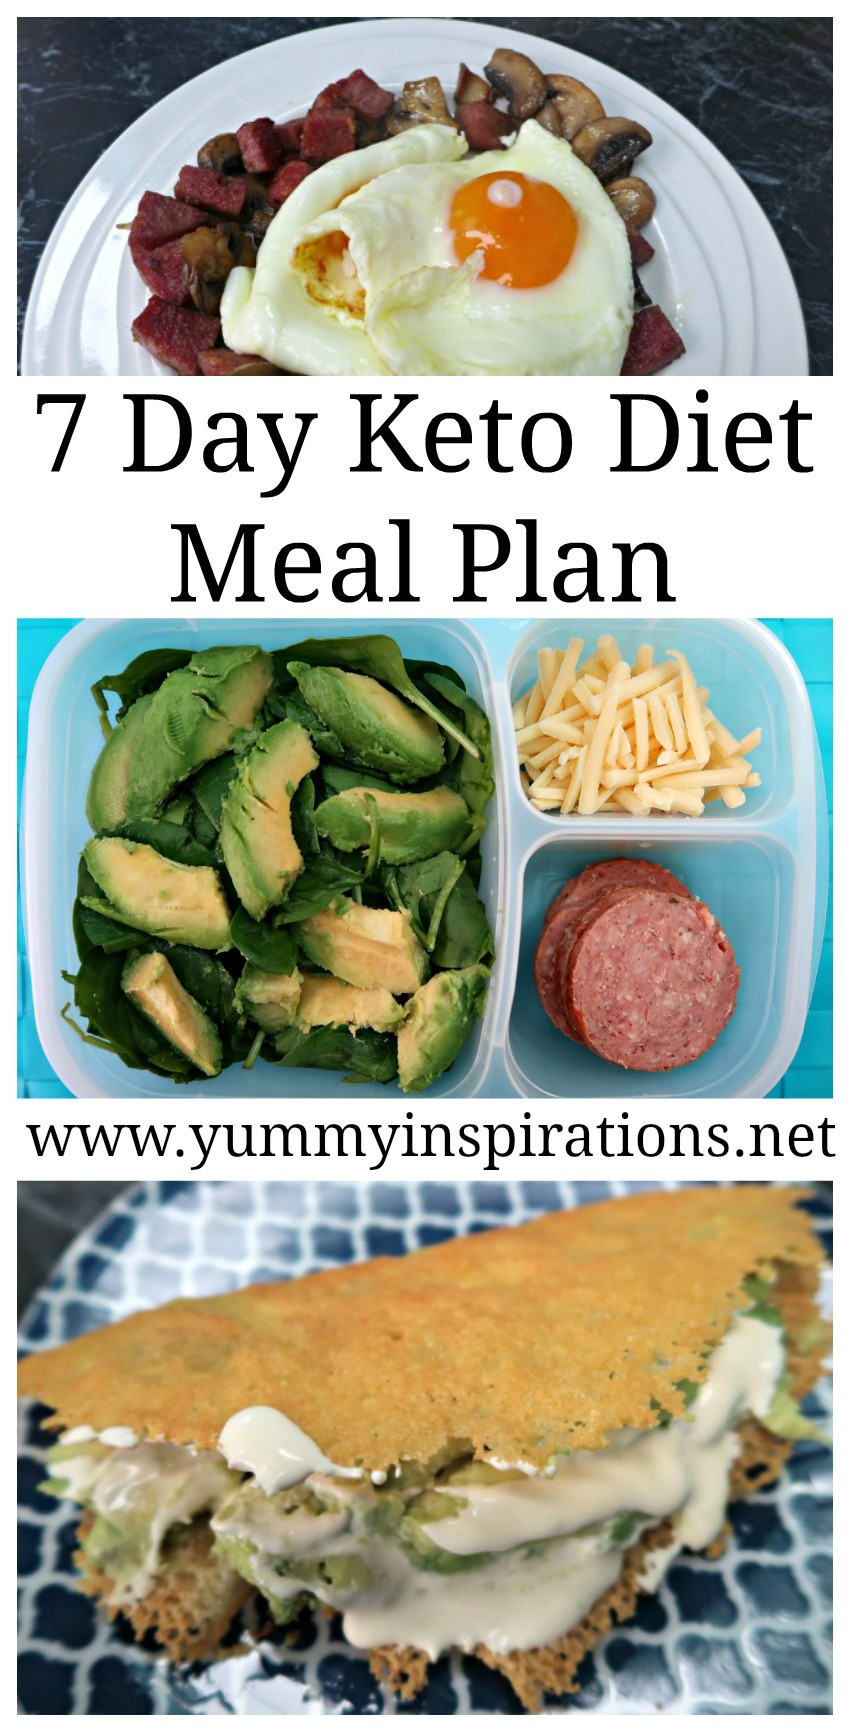 Keto Diet Videos  7 Day Keto Diet Meal Plan For Weight Loss Ketogenic Foods